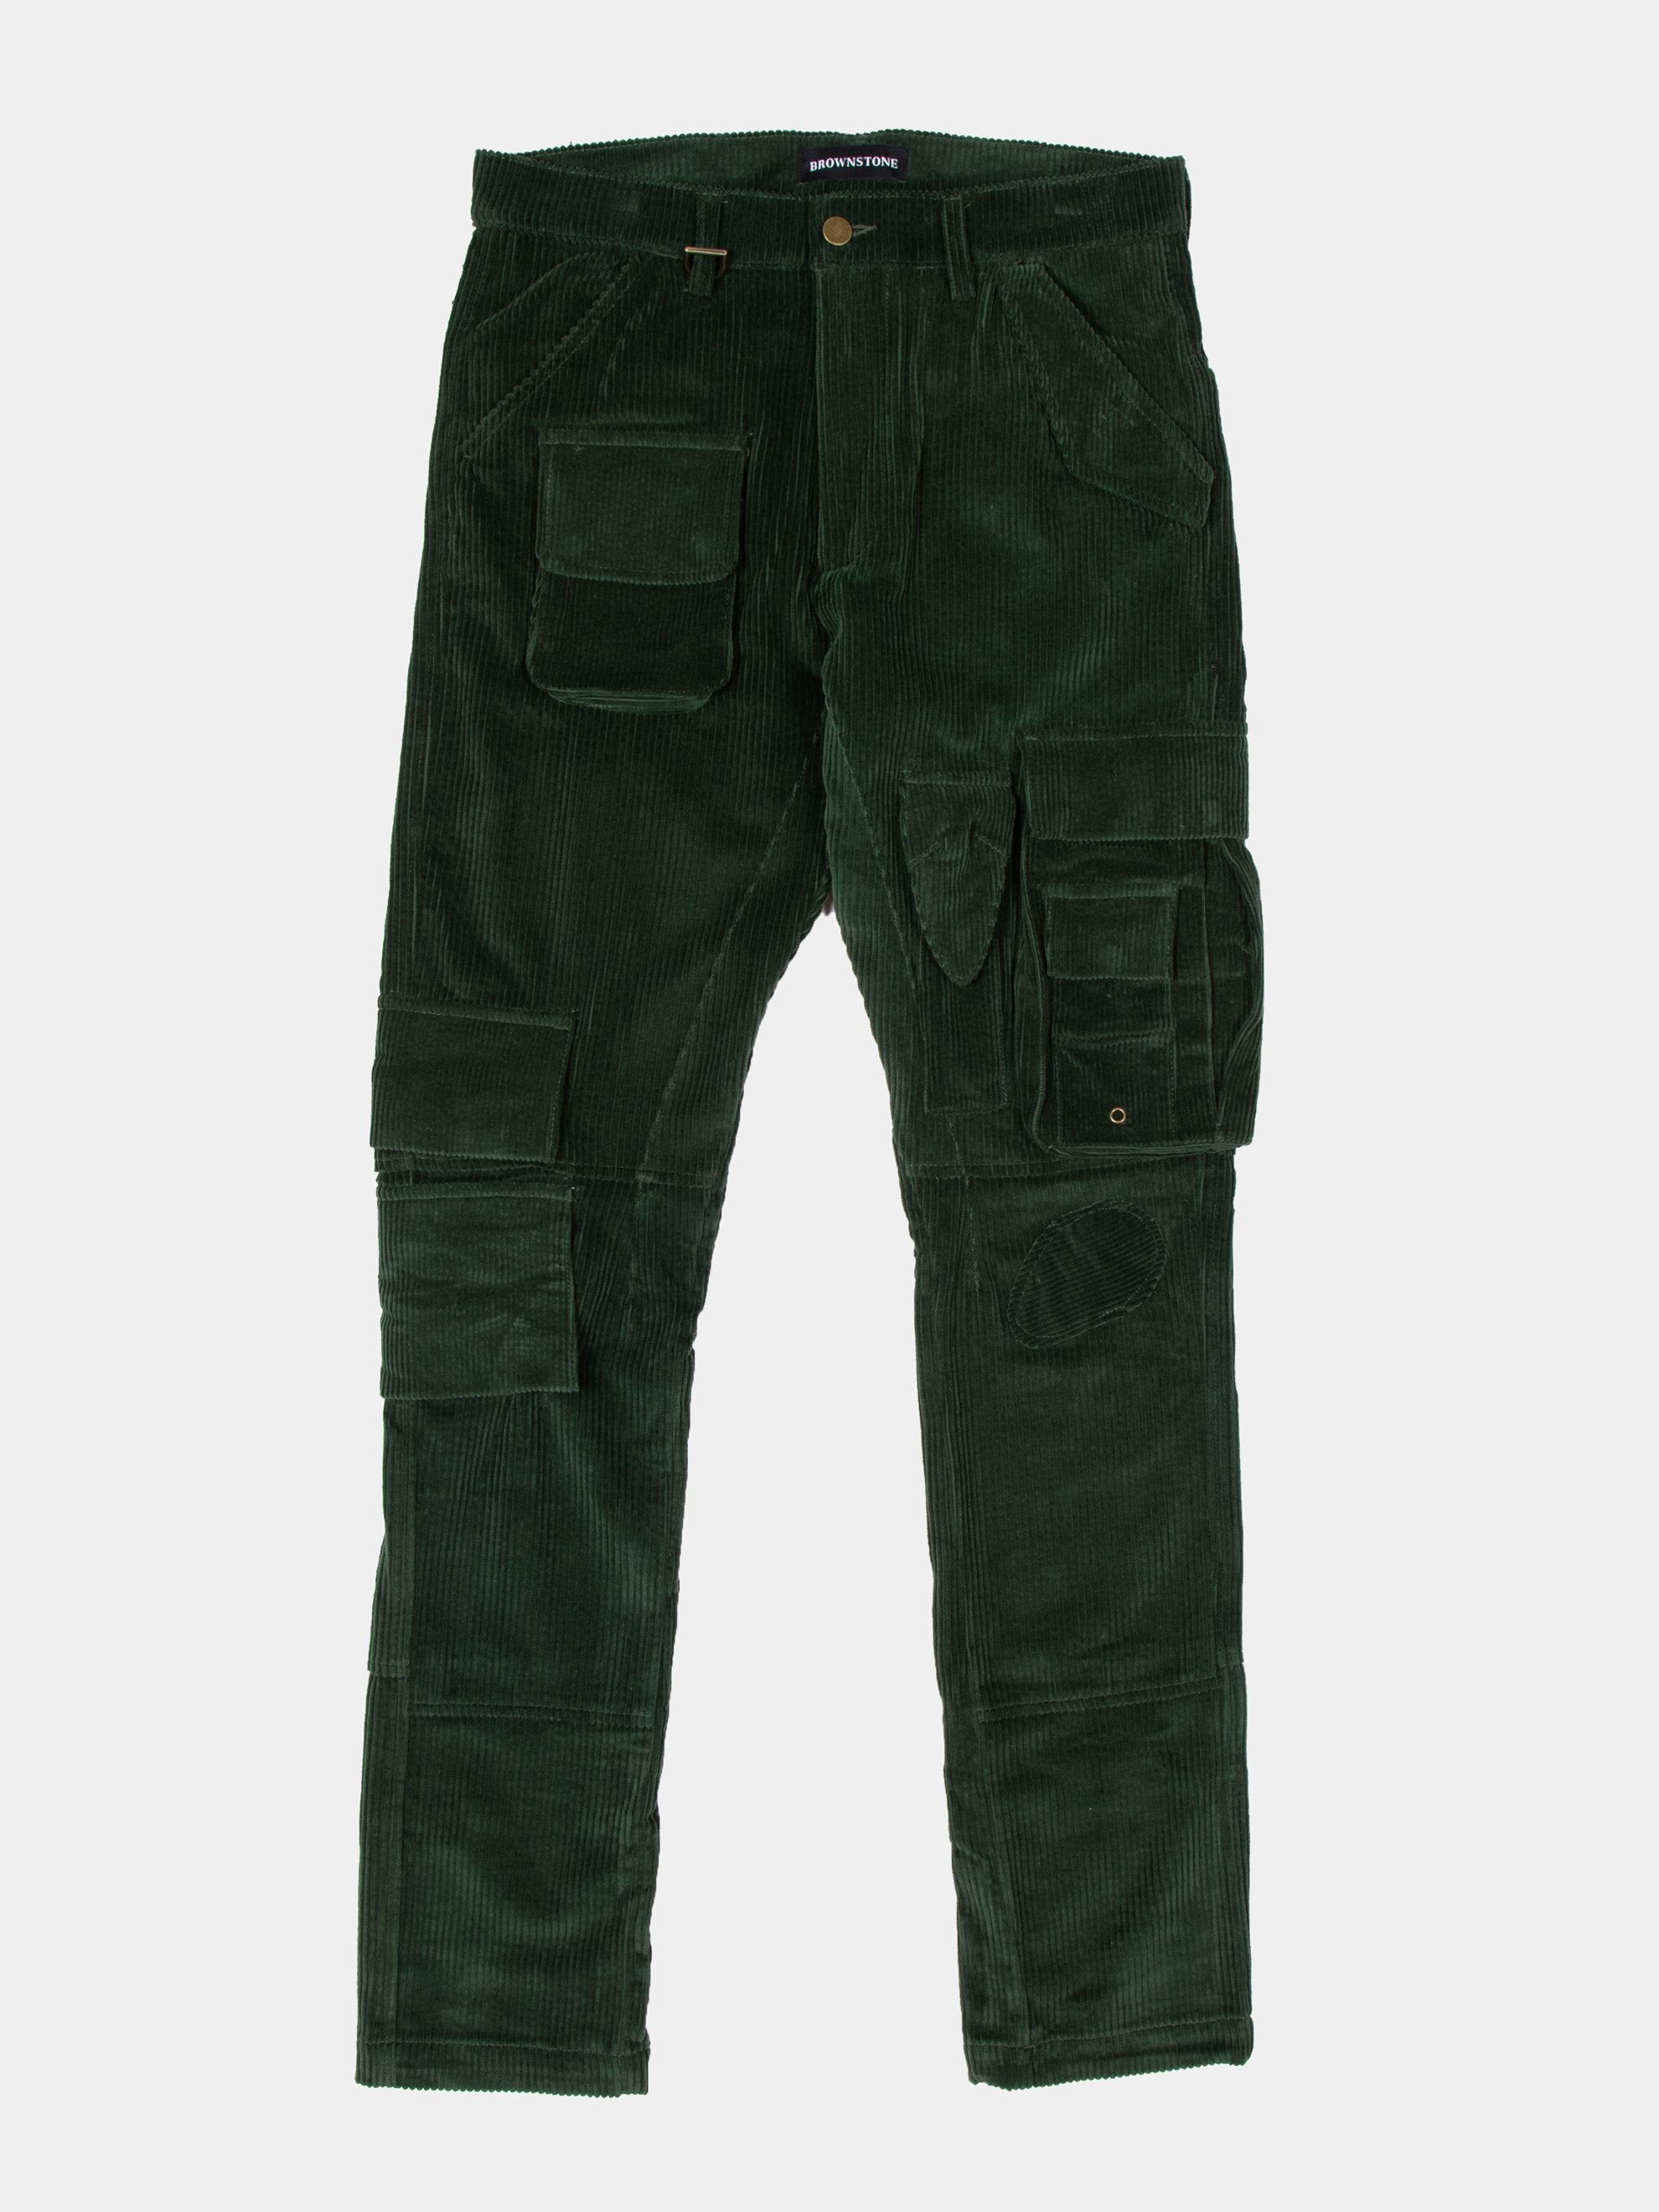 Olive 13 PKT Cargo Pant 1